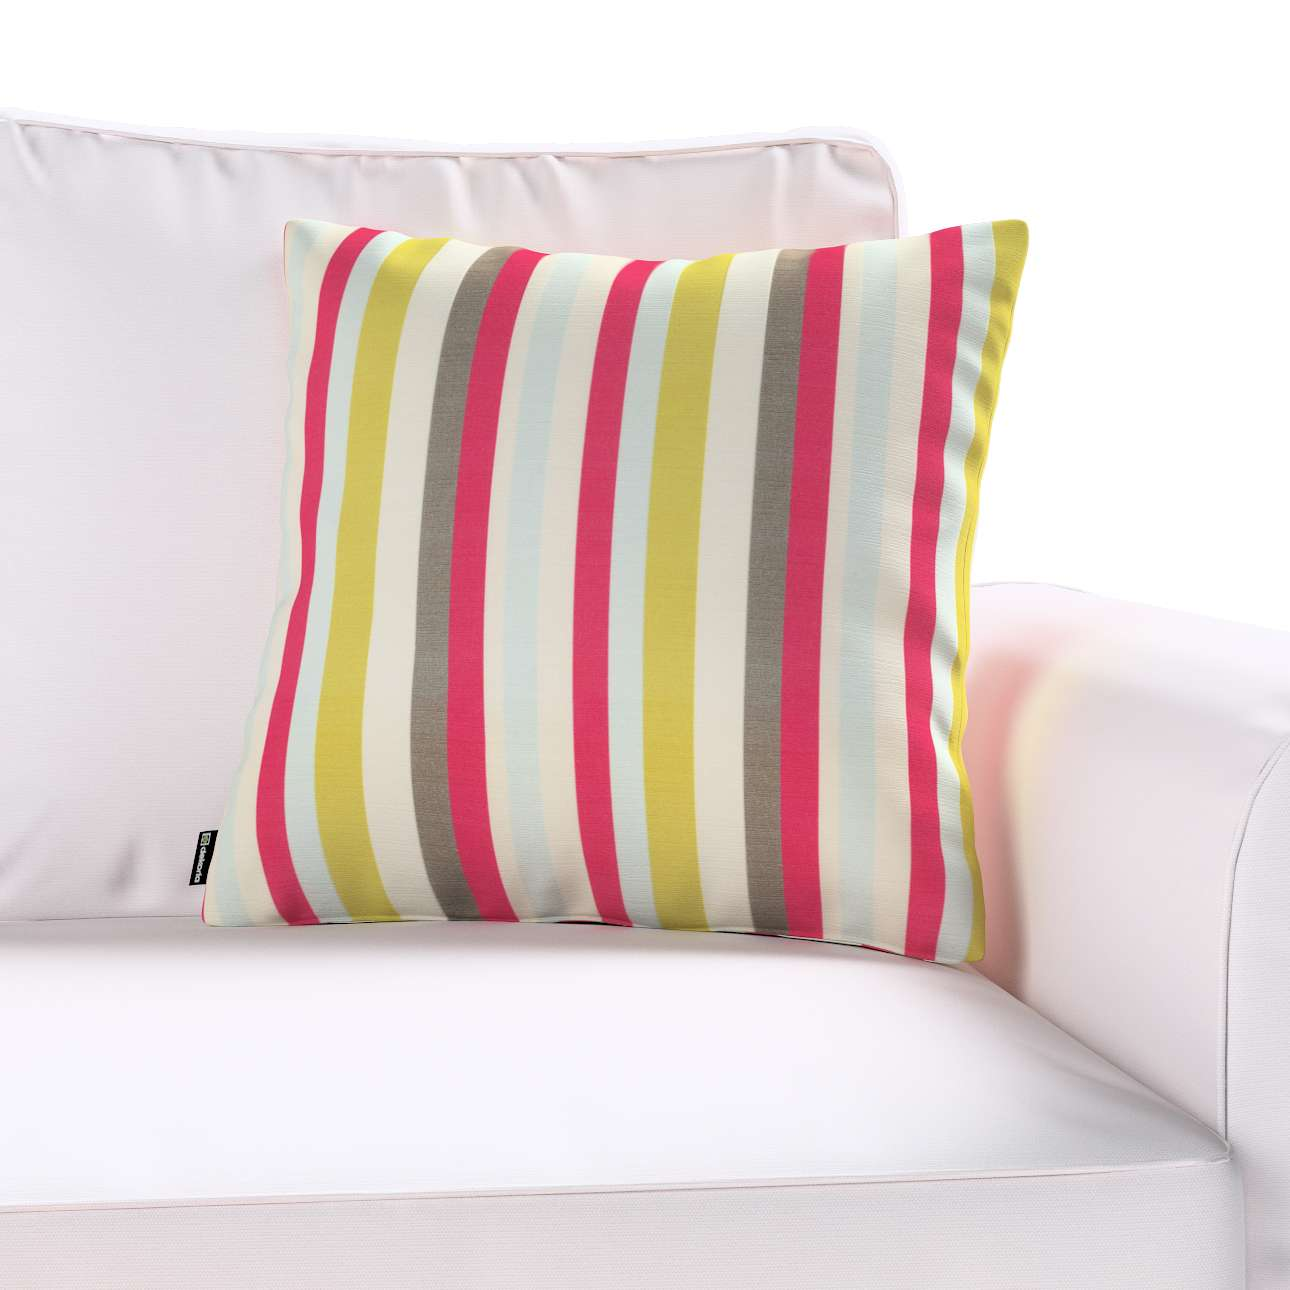 Kinga cushion cover 43 x 43 cm (17 x 17 inch) in collection Flowers, fabric: 140-81